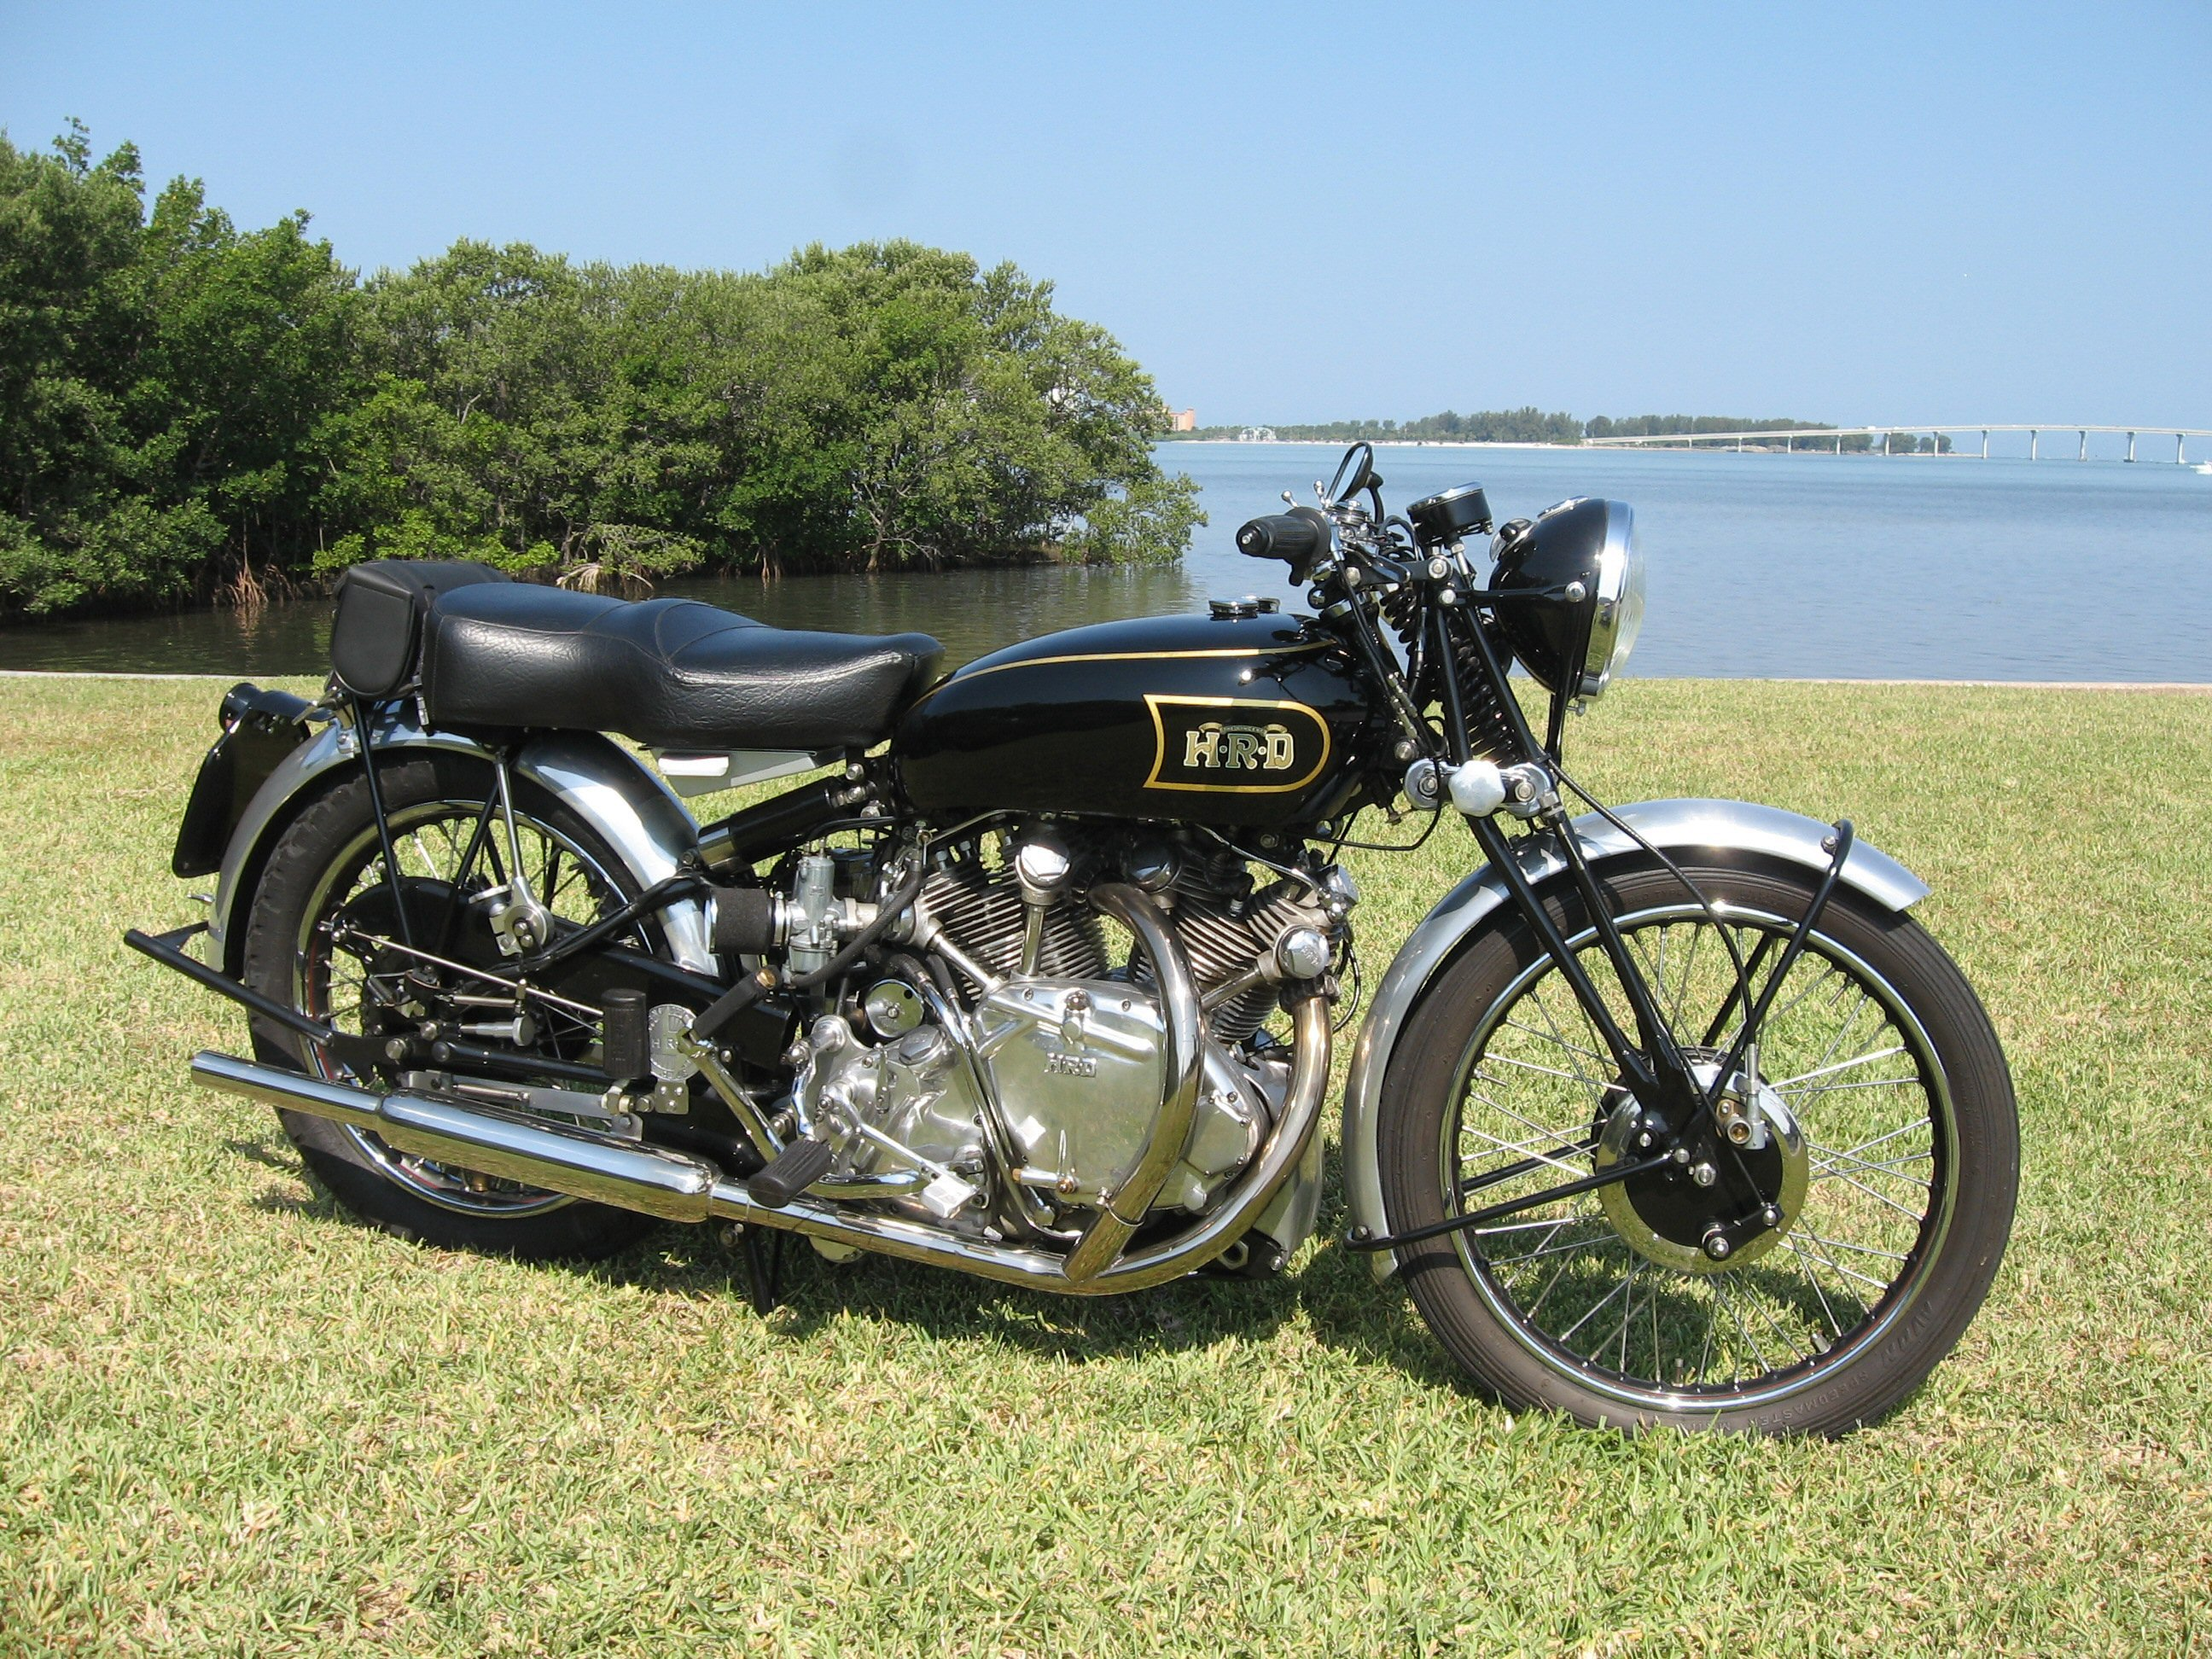 Vincent Motorcycle Free Classifieds 1948 Indian Engine Diagram Sold 1947 Hrd Rapide Series B 335 Restored In The Uk Approx 5 Years Ago Ridden 3000 Miles Or Less Since Very Stunning Performance With 1116 Cc